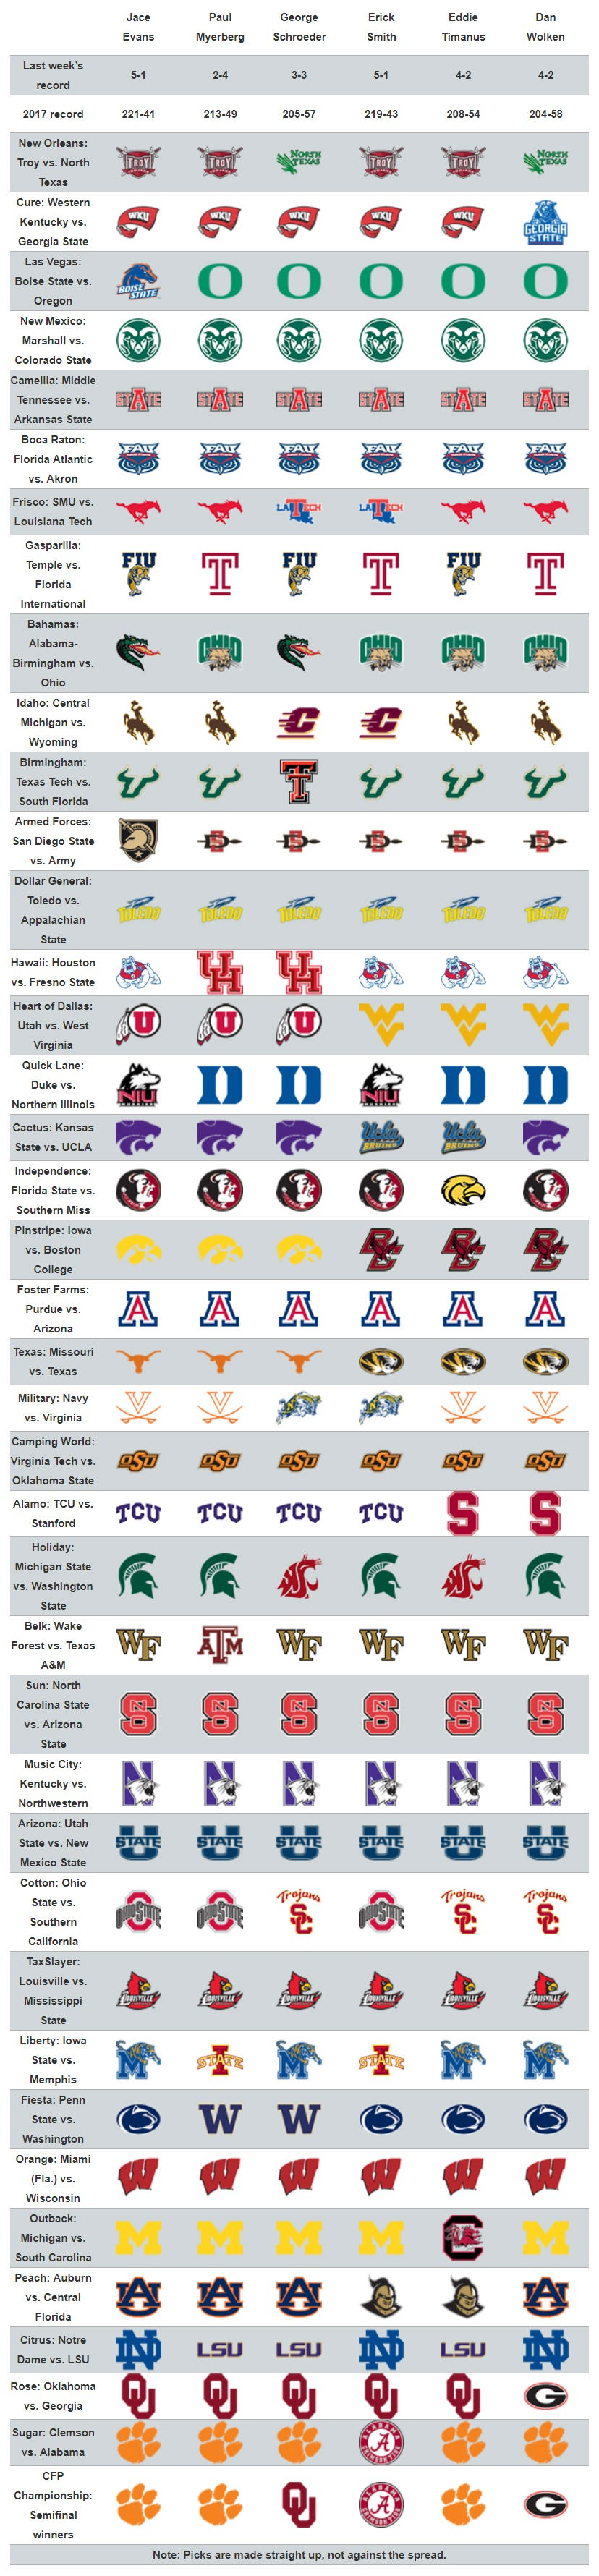 College Bowl Games Lineup >> USA TODAY Sports college football staff picks for every bowl game